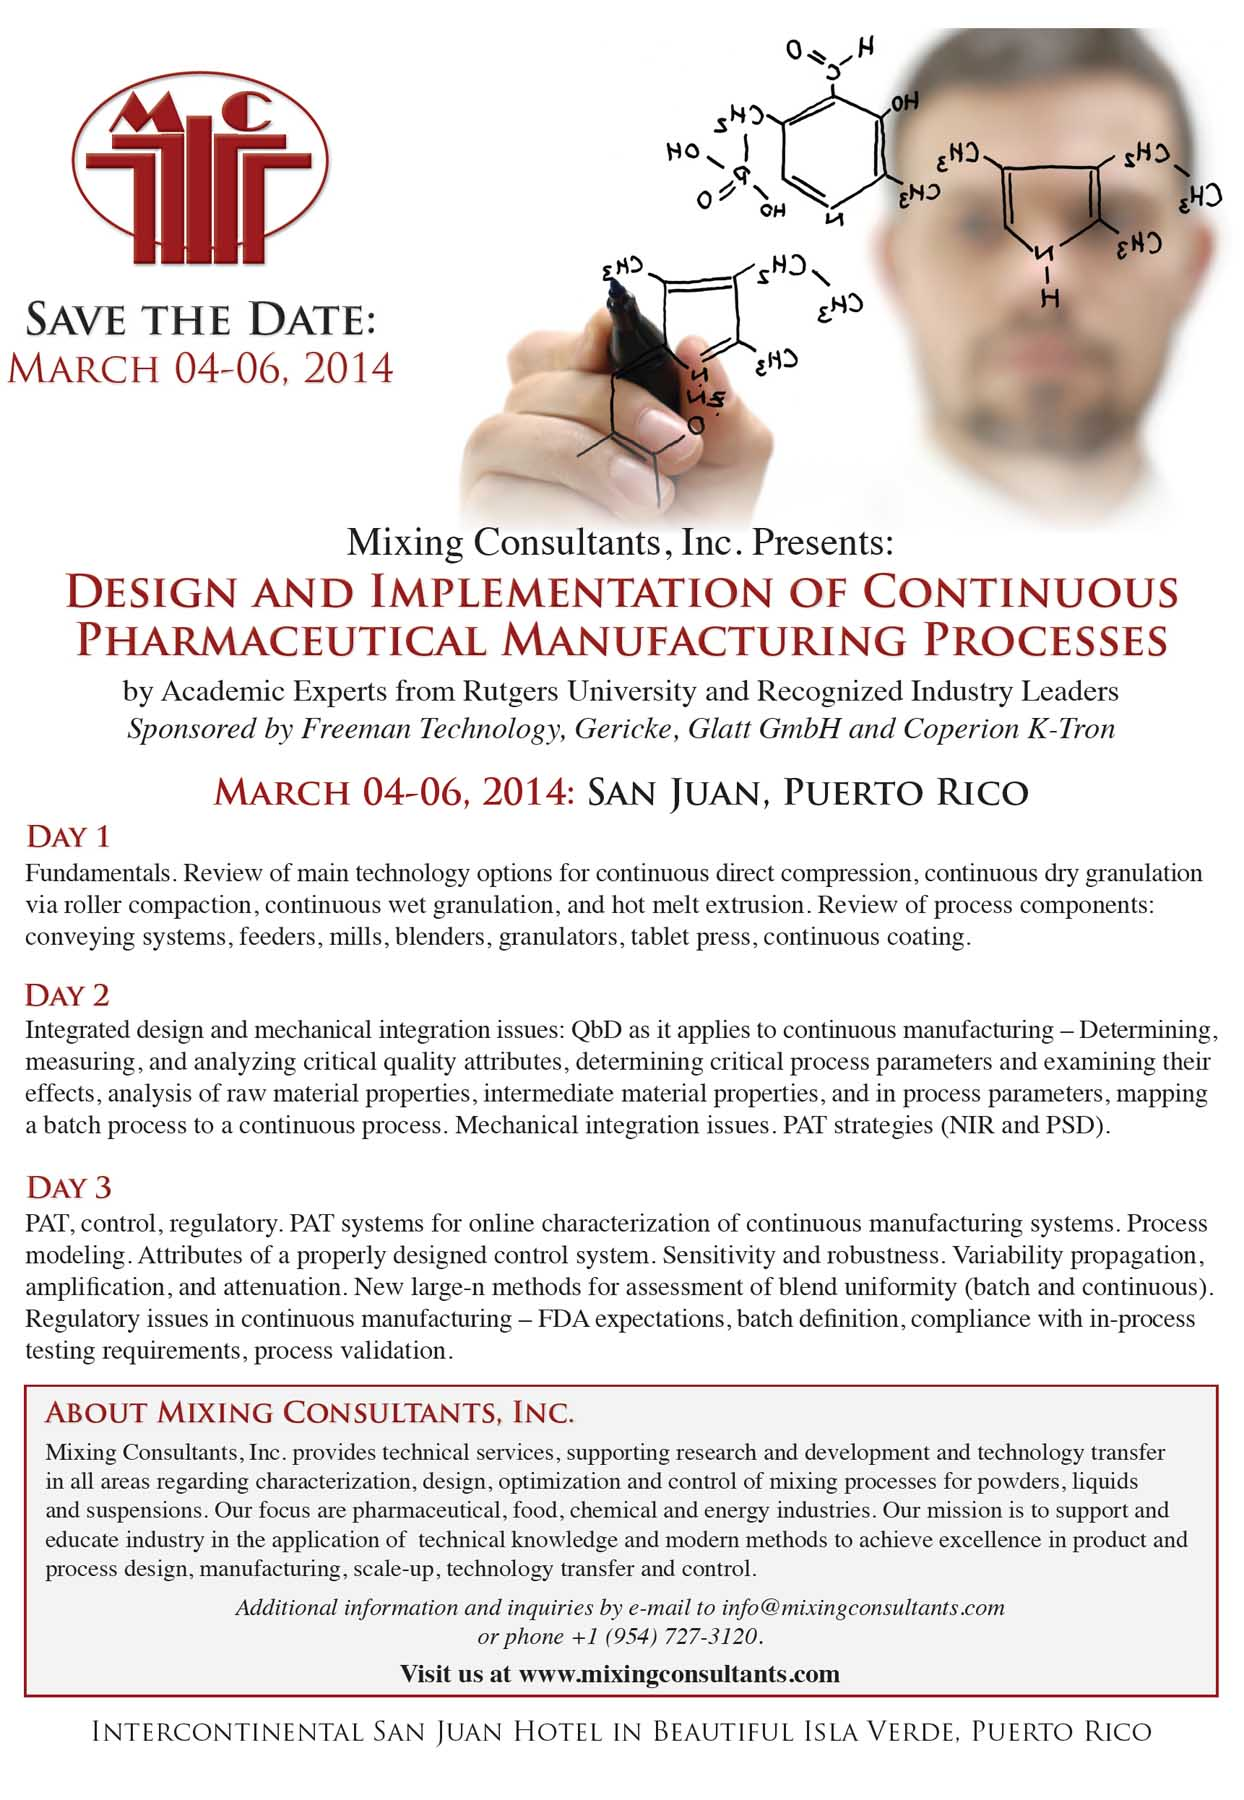 Design and implementation of continuous pharmaceutical manufacturing processes course